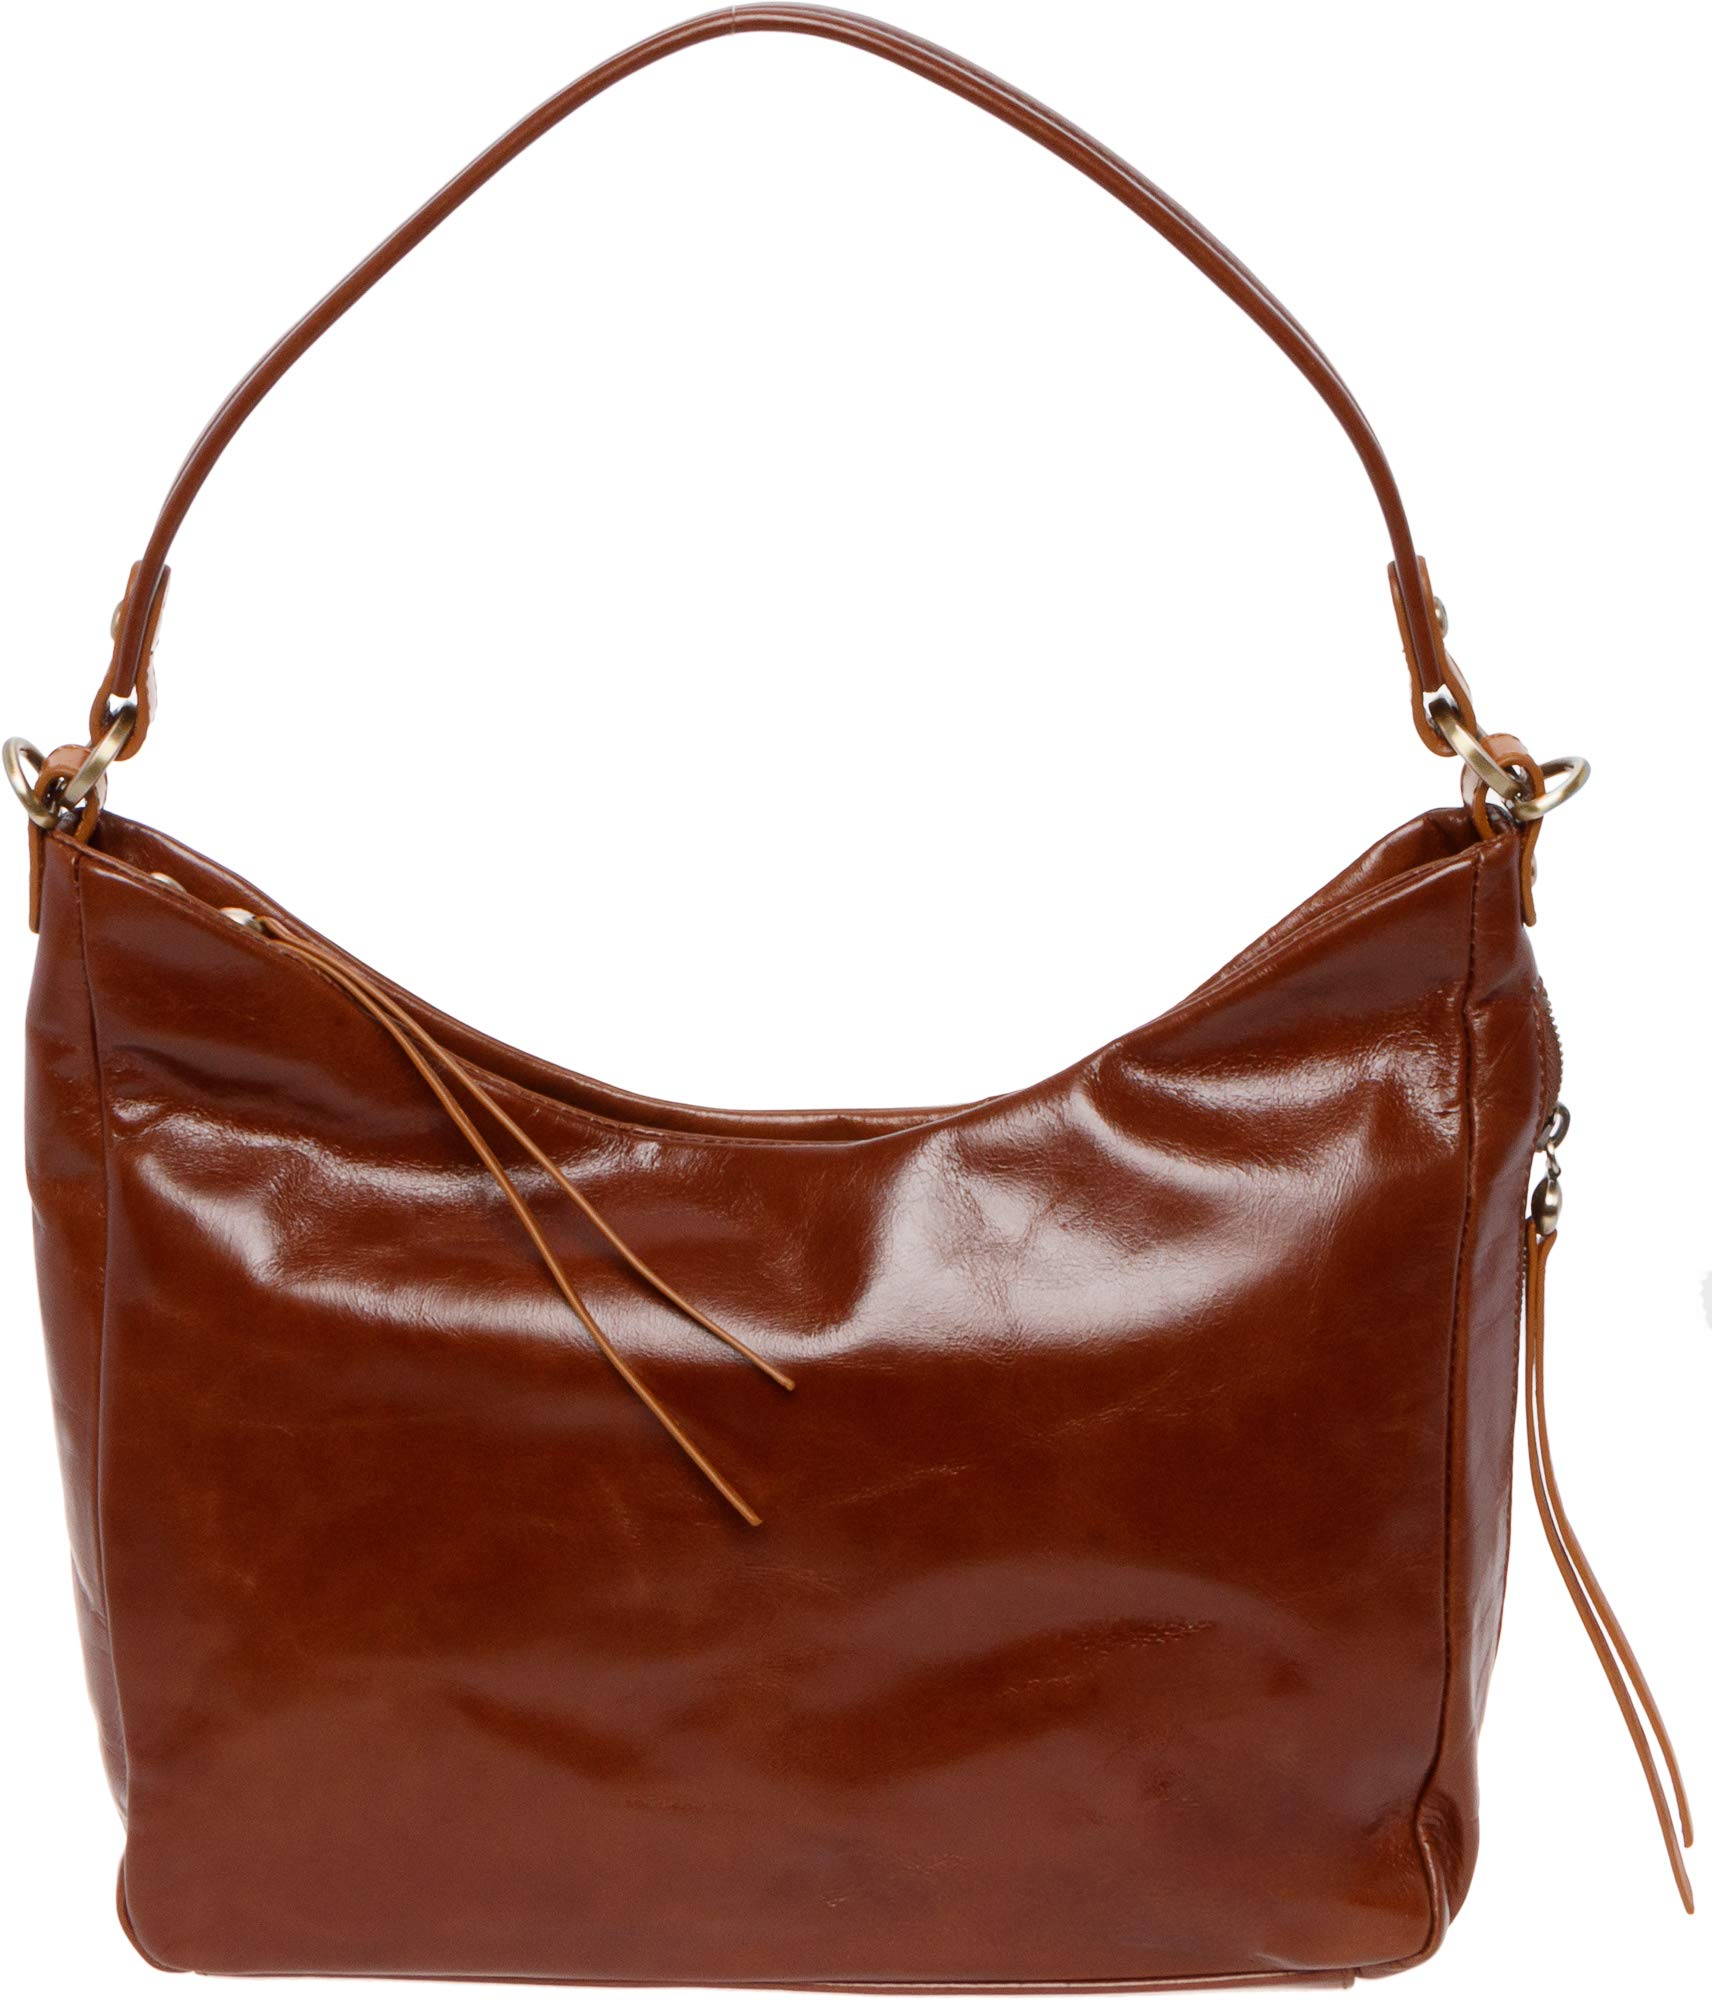 Hobo Women's Leather Delilah Convertible Shoulder Bag (Woodlands)